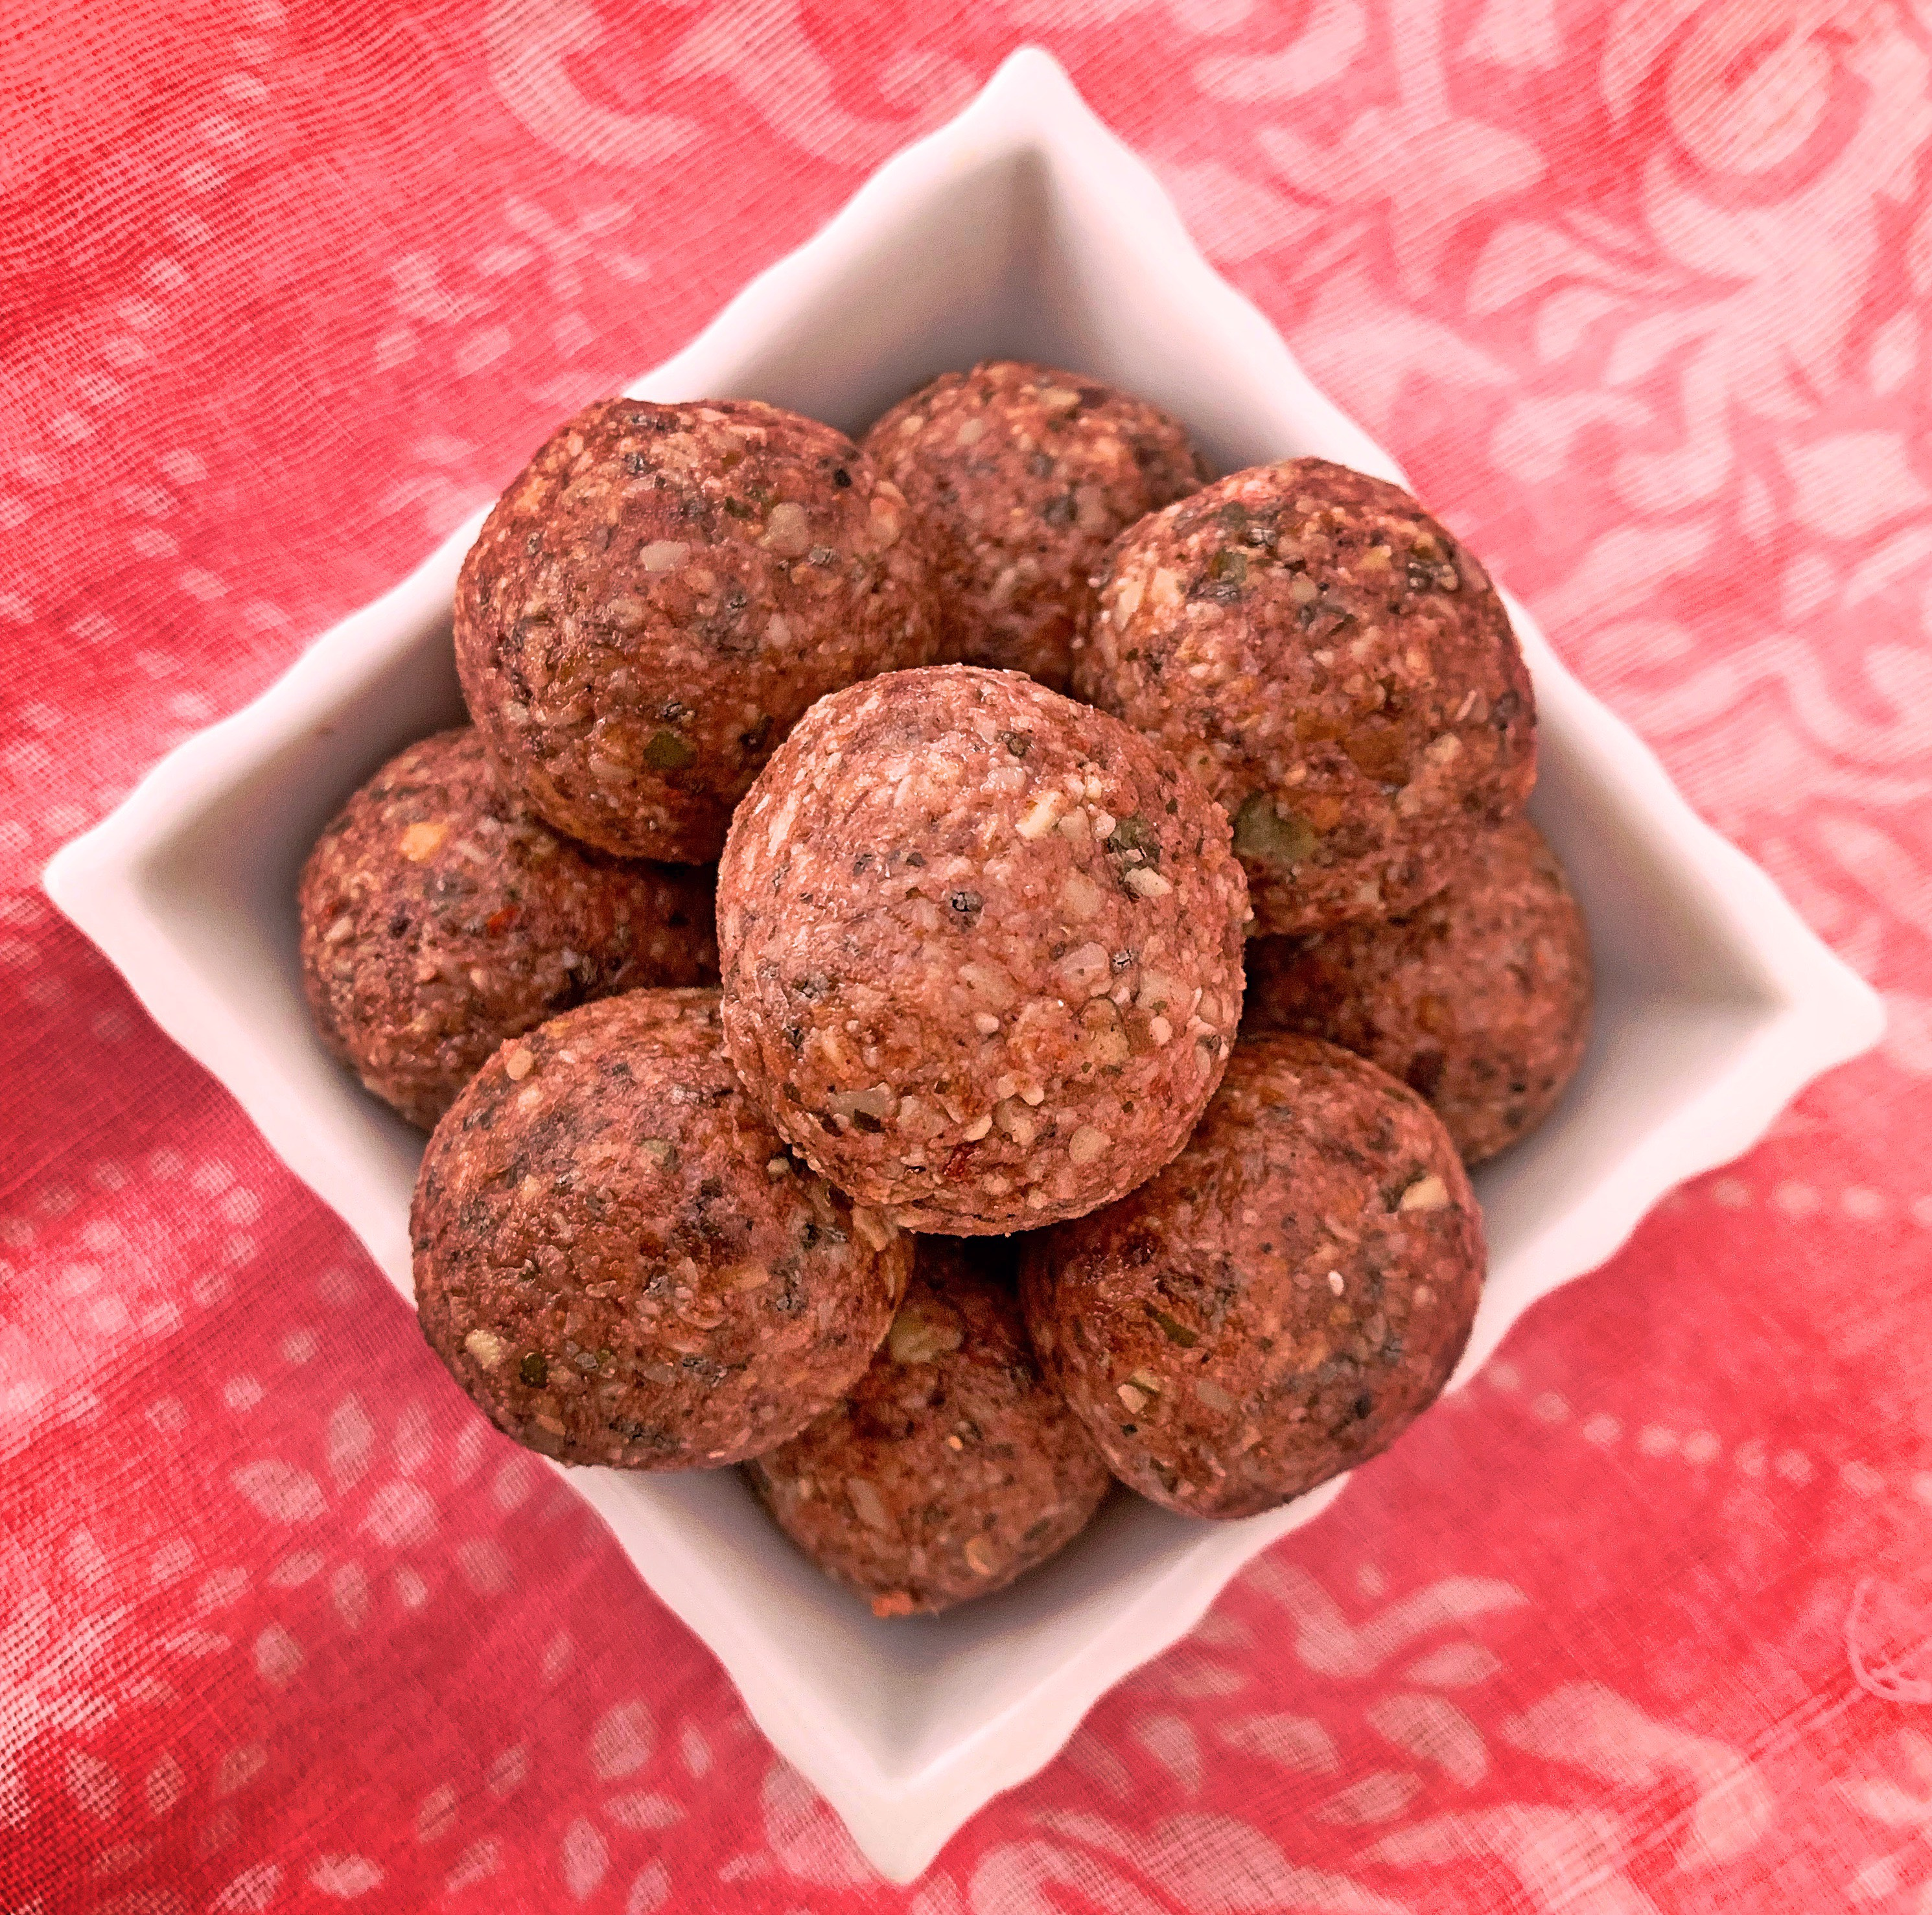 Berry delight energy balls